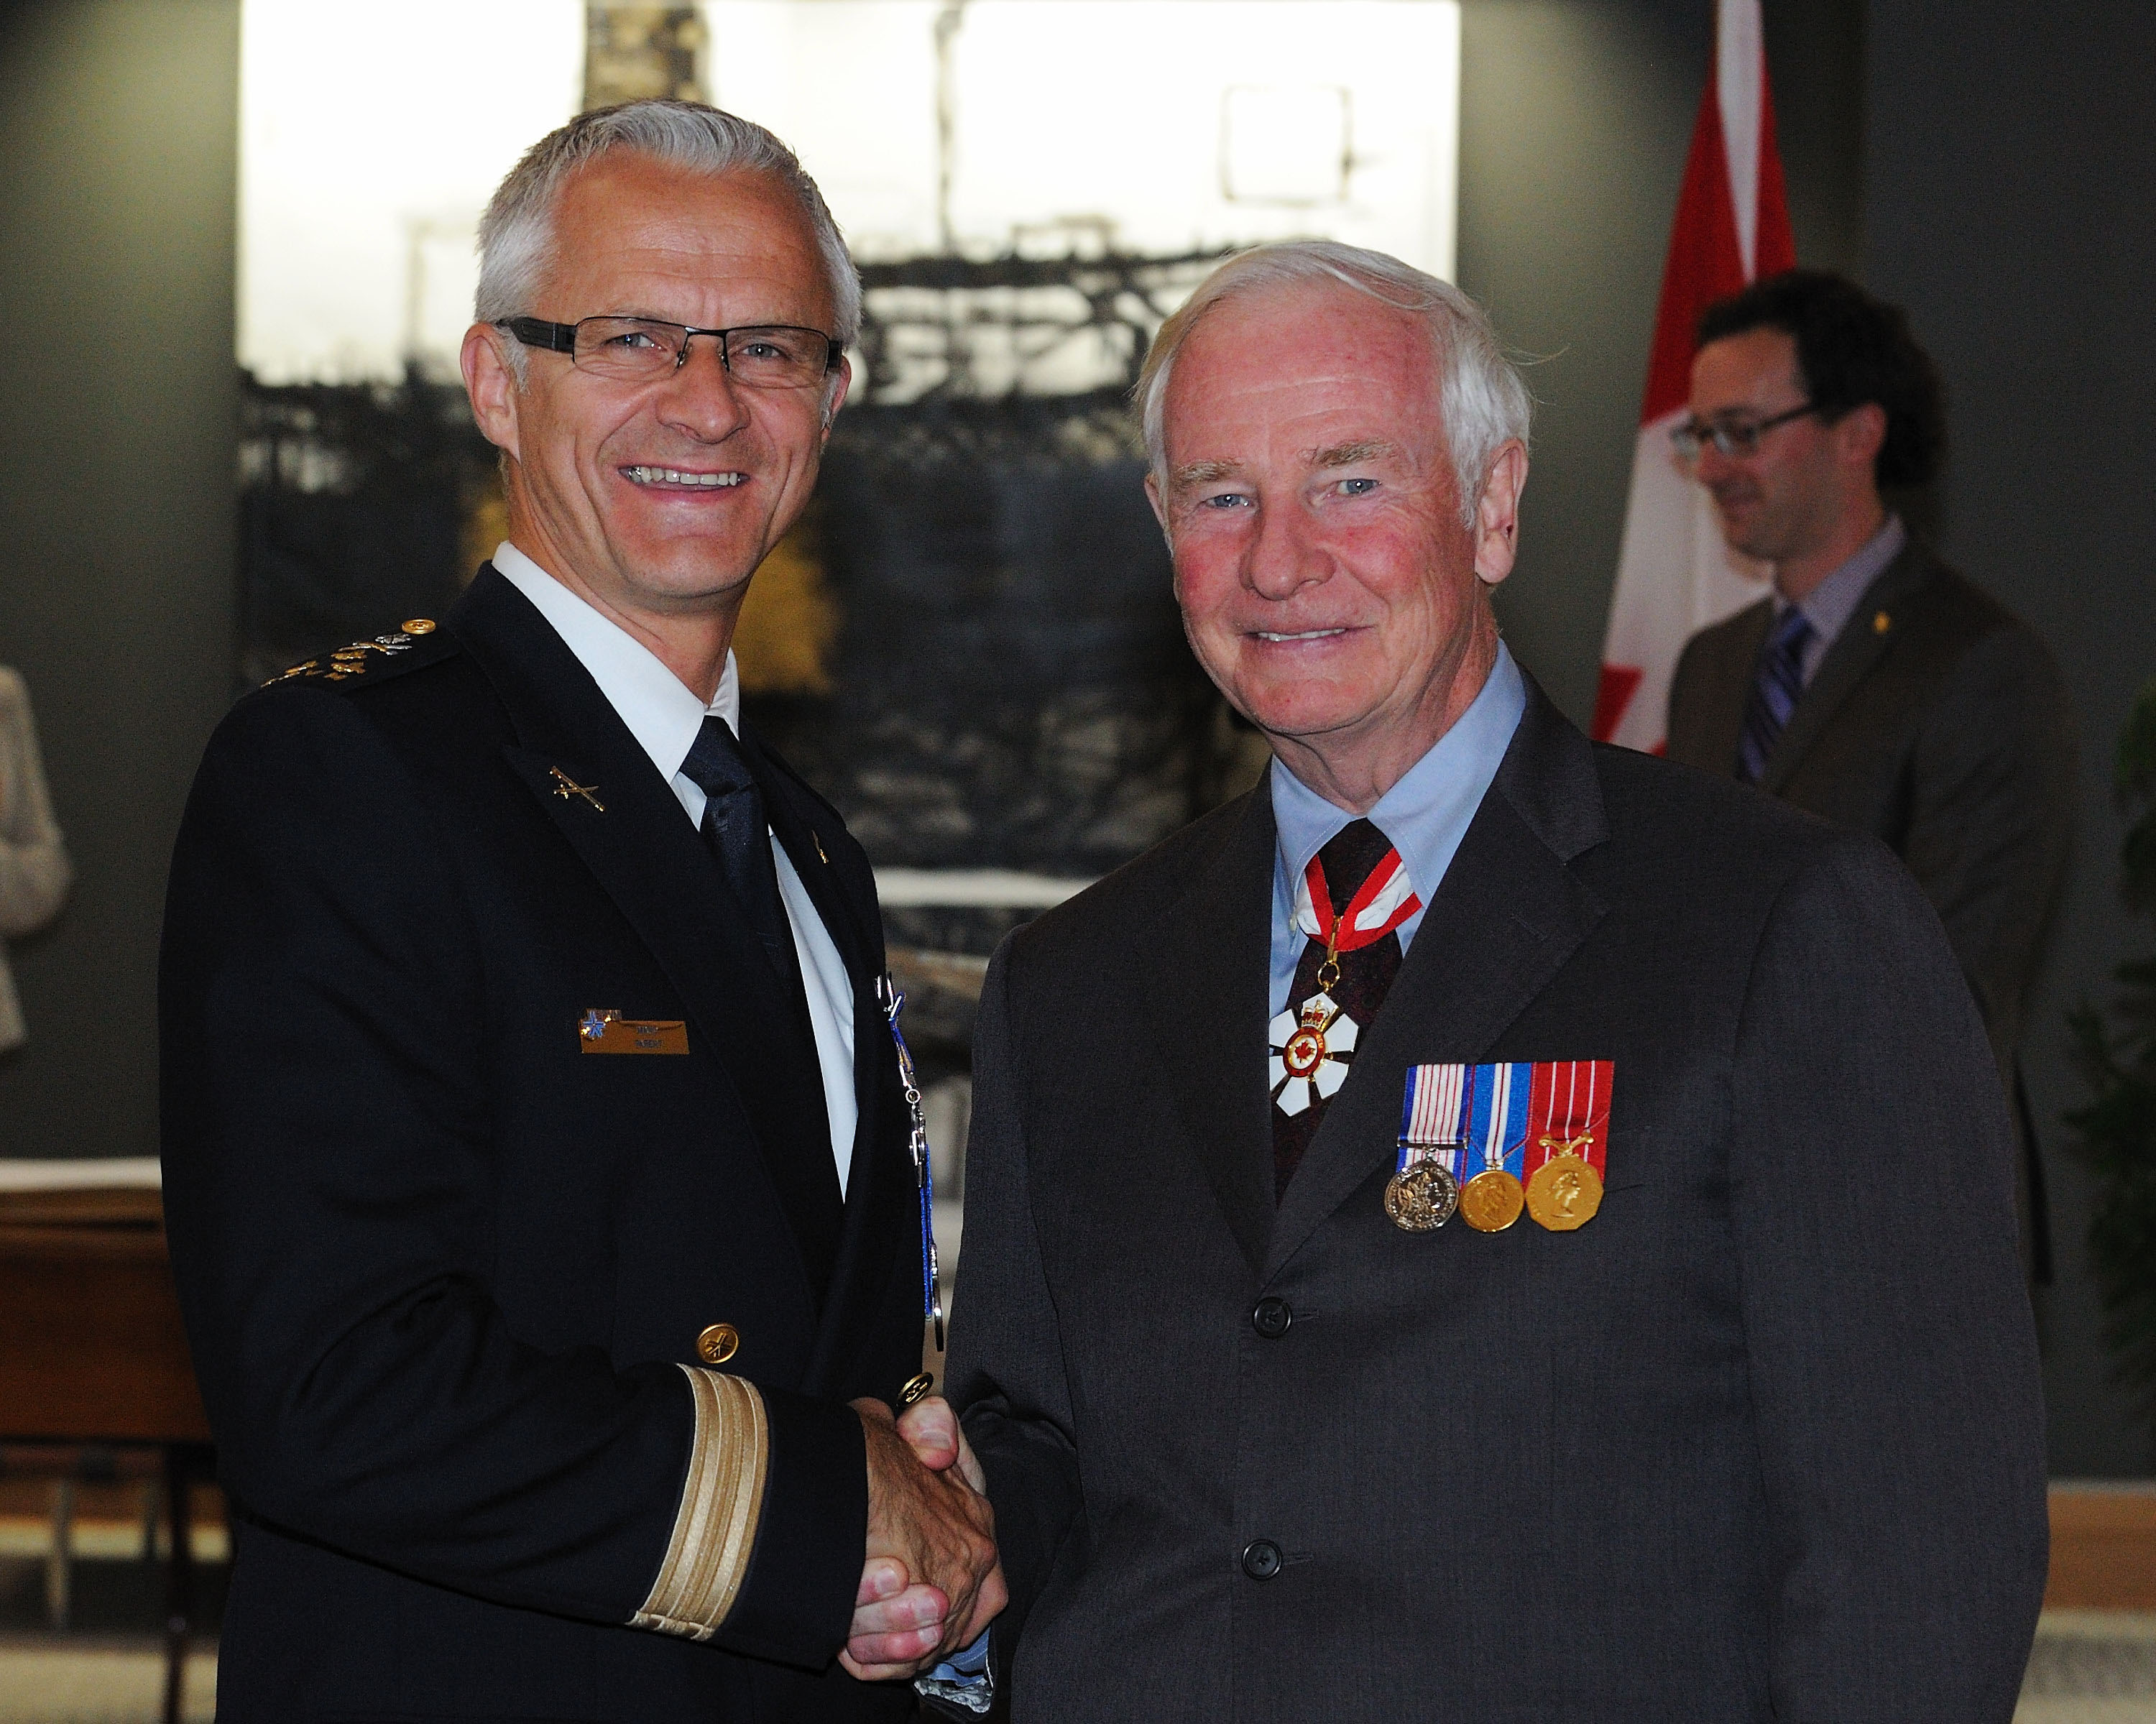 During this ceremony, Director Marc Parent, M.O.M., of the Service de police de la Ville de Montréal, was invested as Member of the Order of Merit of the Police Forces.